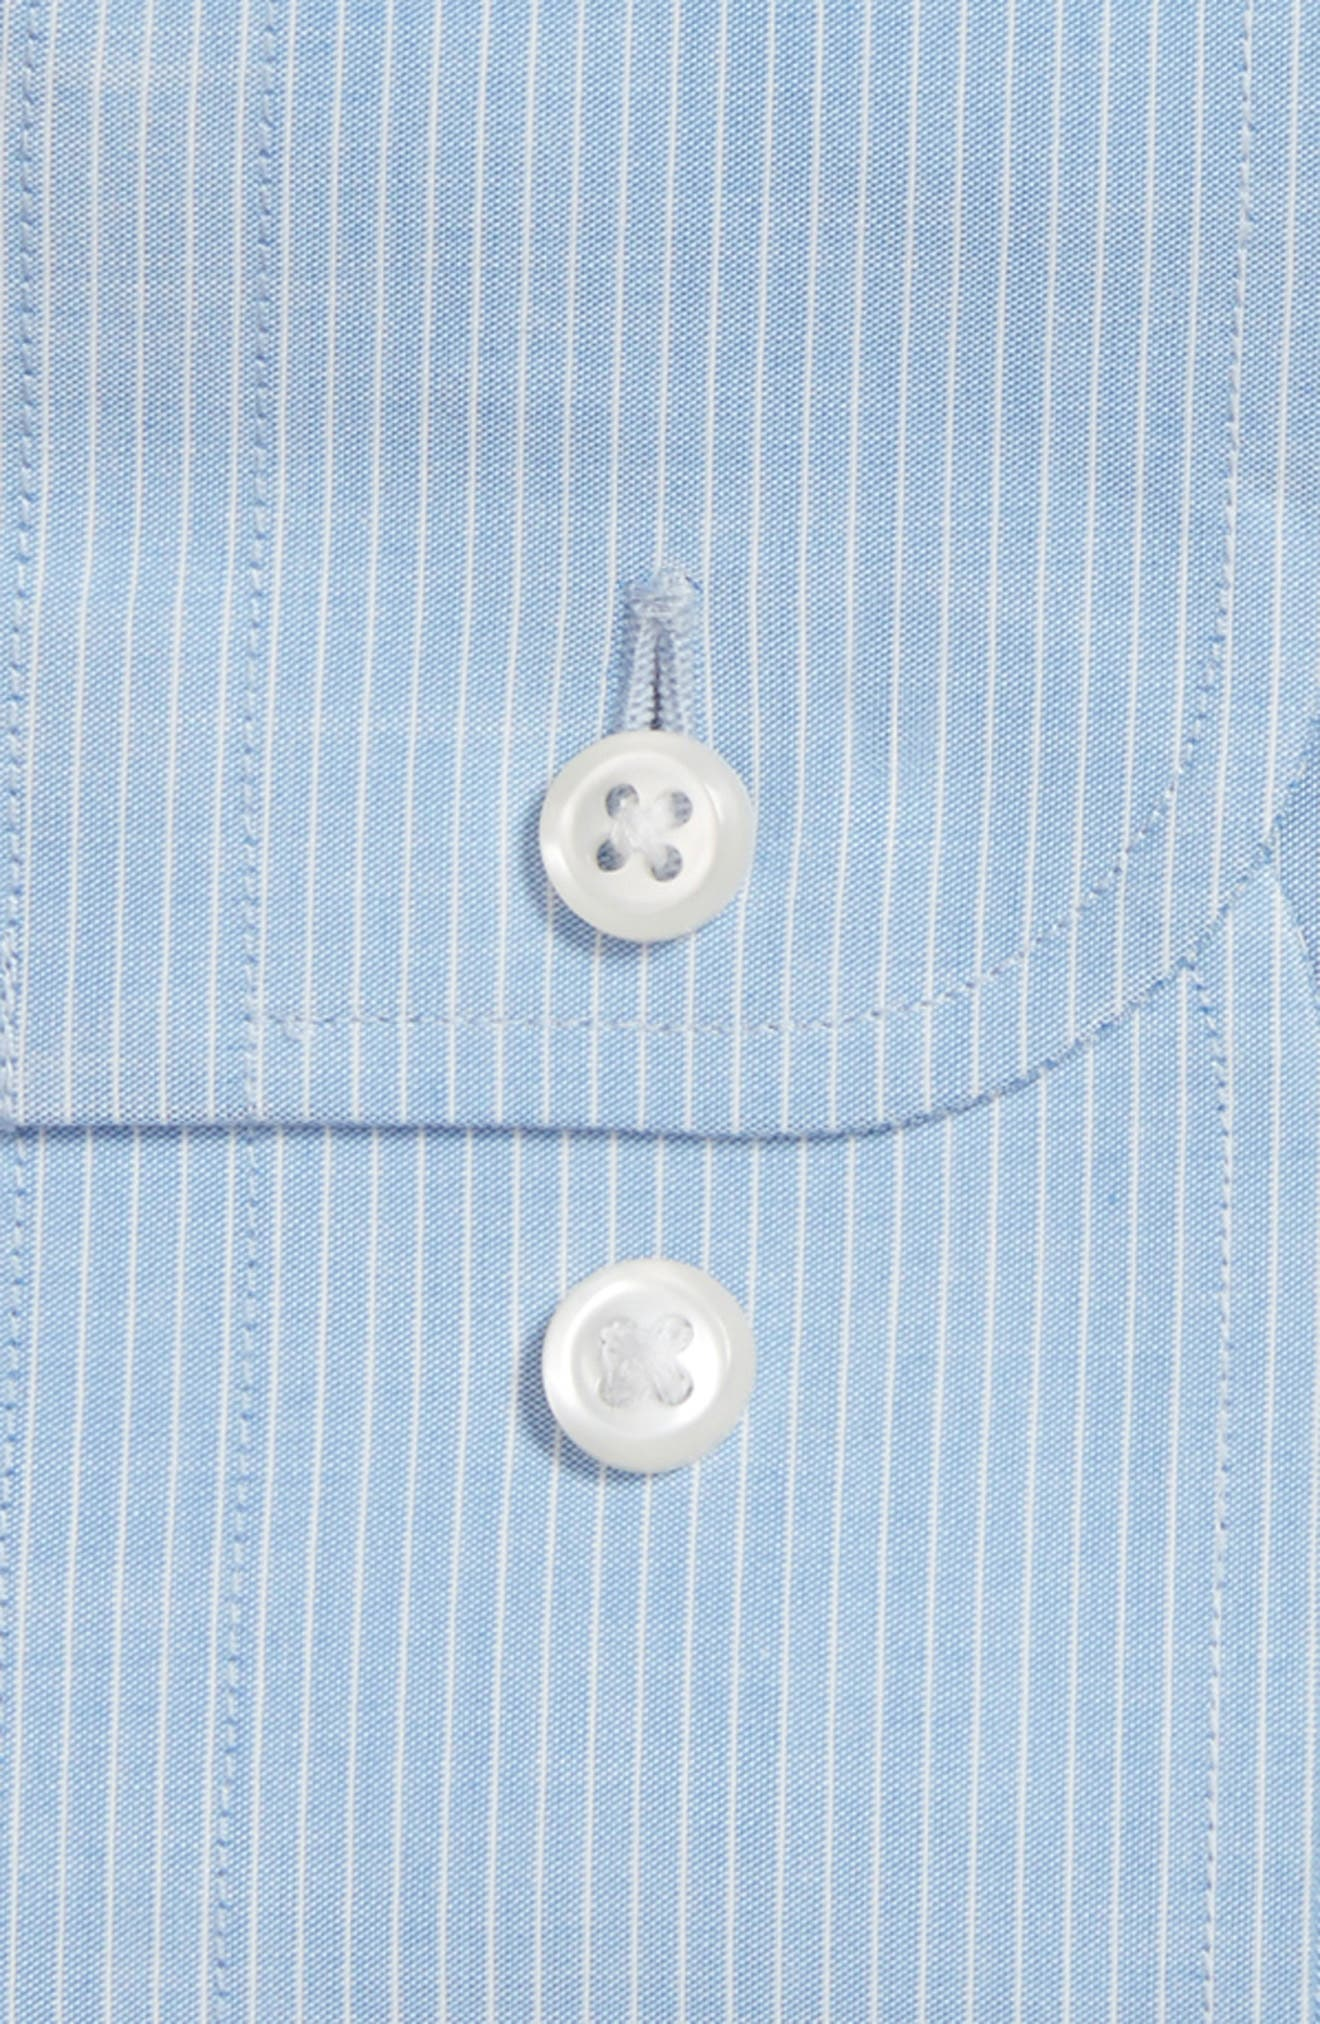 Trim Fit Stripe Dress Shirt,                             Alternate thumbnail 2, color,                             450